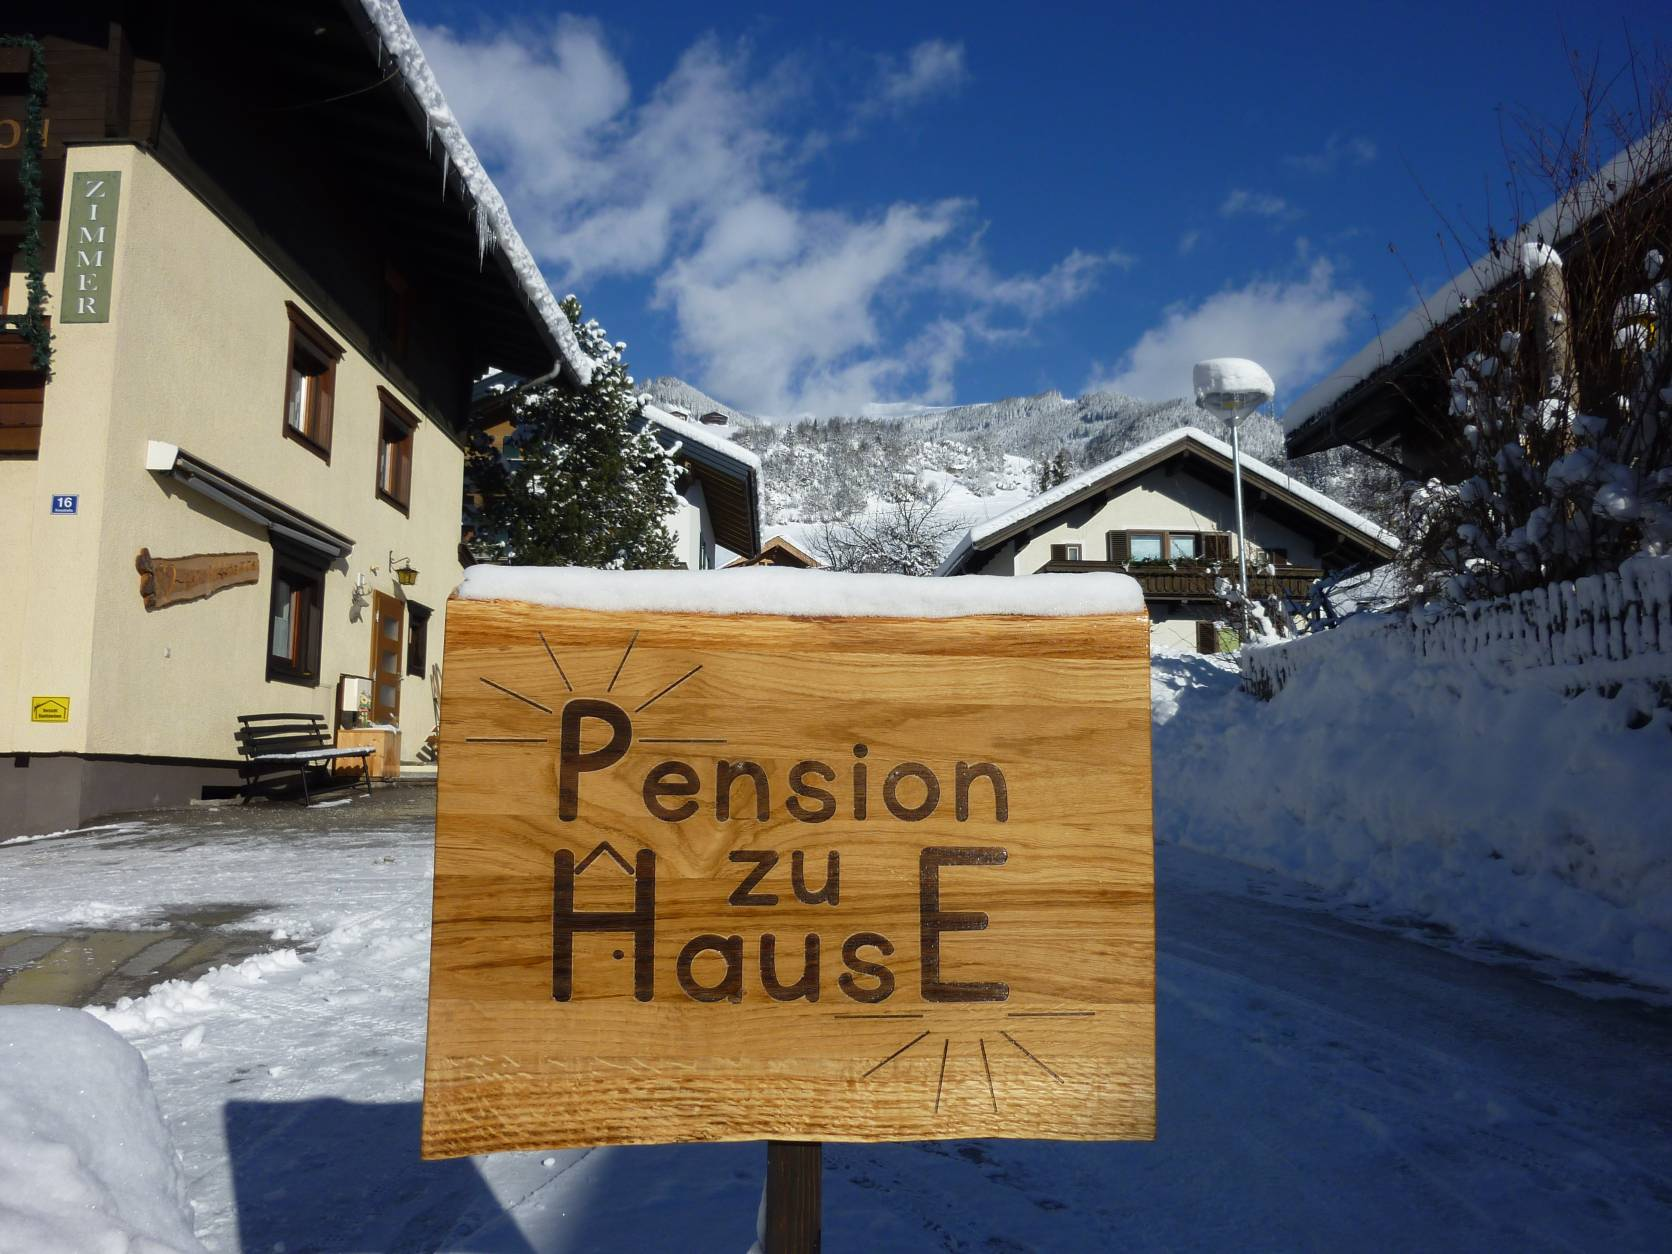 A warm welcome at Pension zu Hause